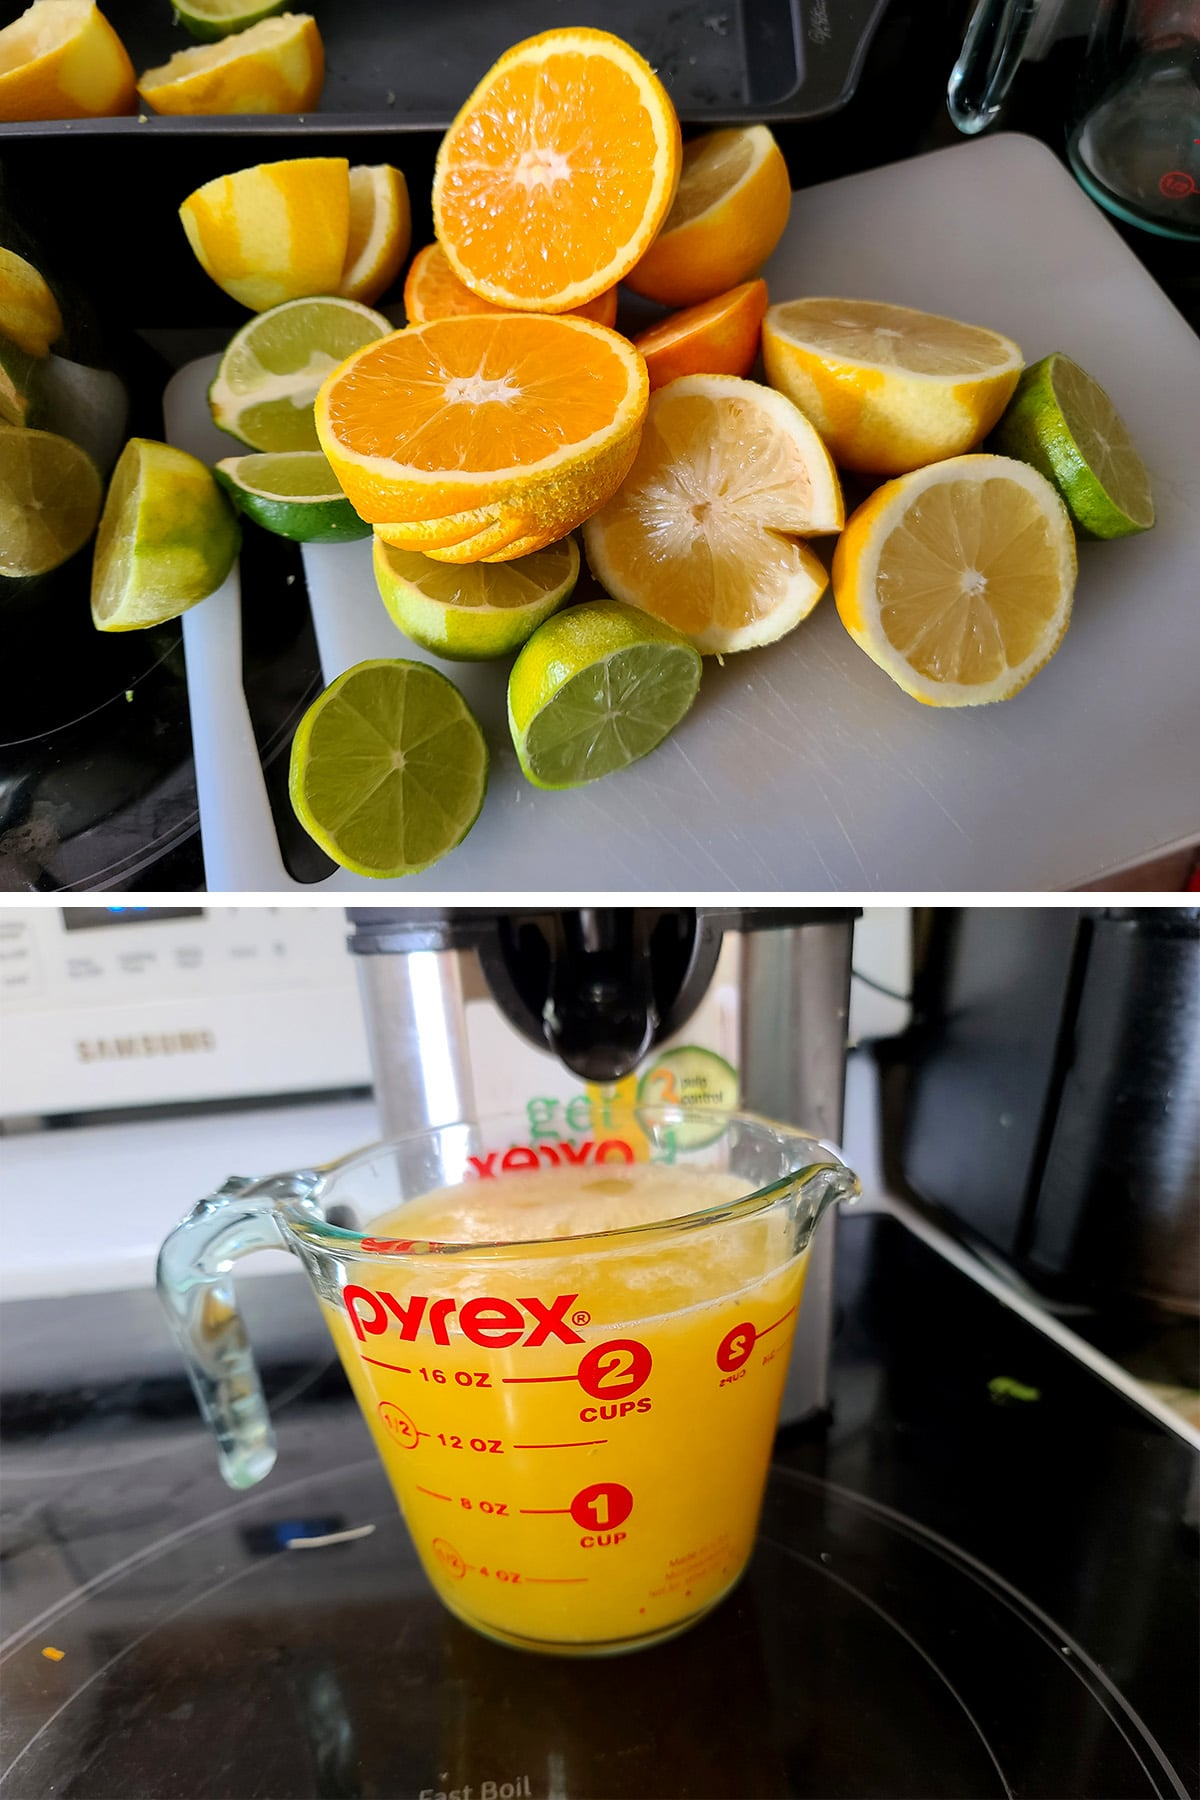 Lemons, limes, and oranges cut in half, and a glass measuring cup full of fresh citrus juice.